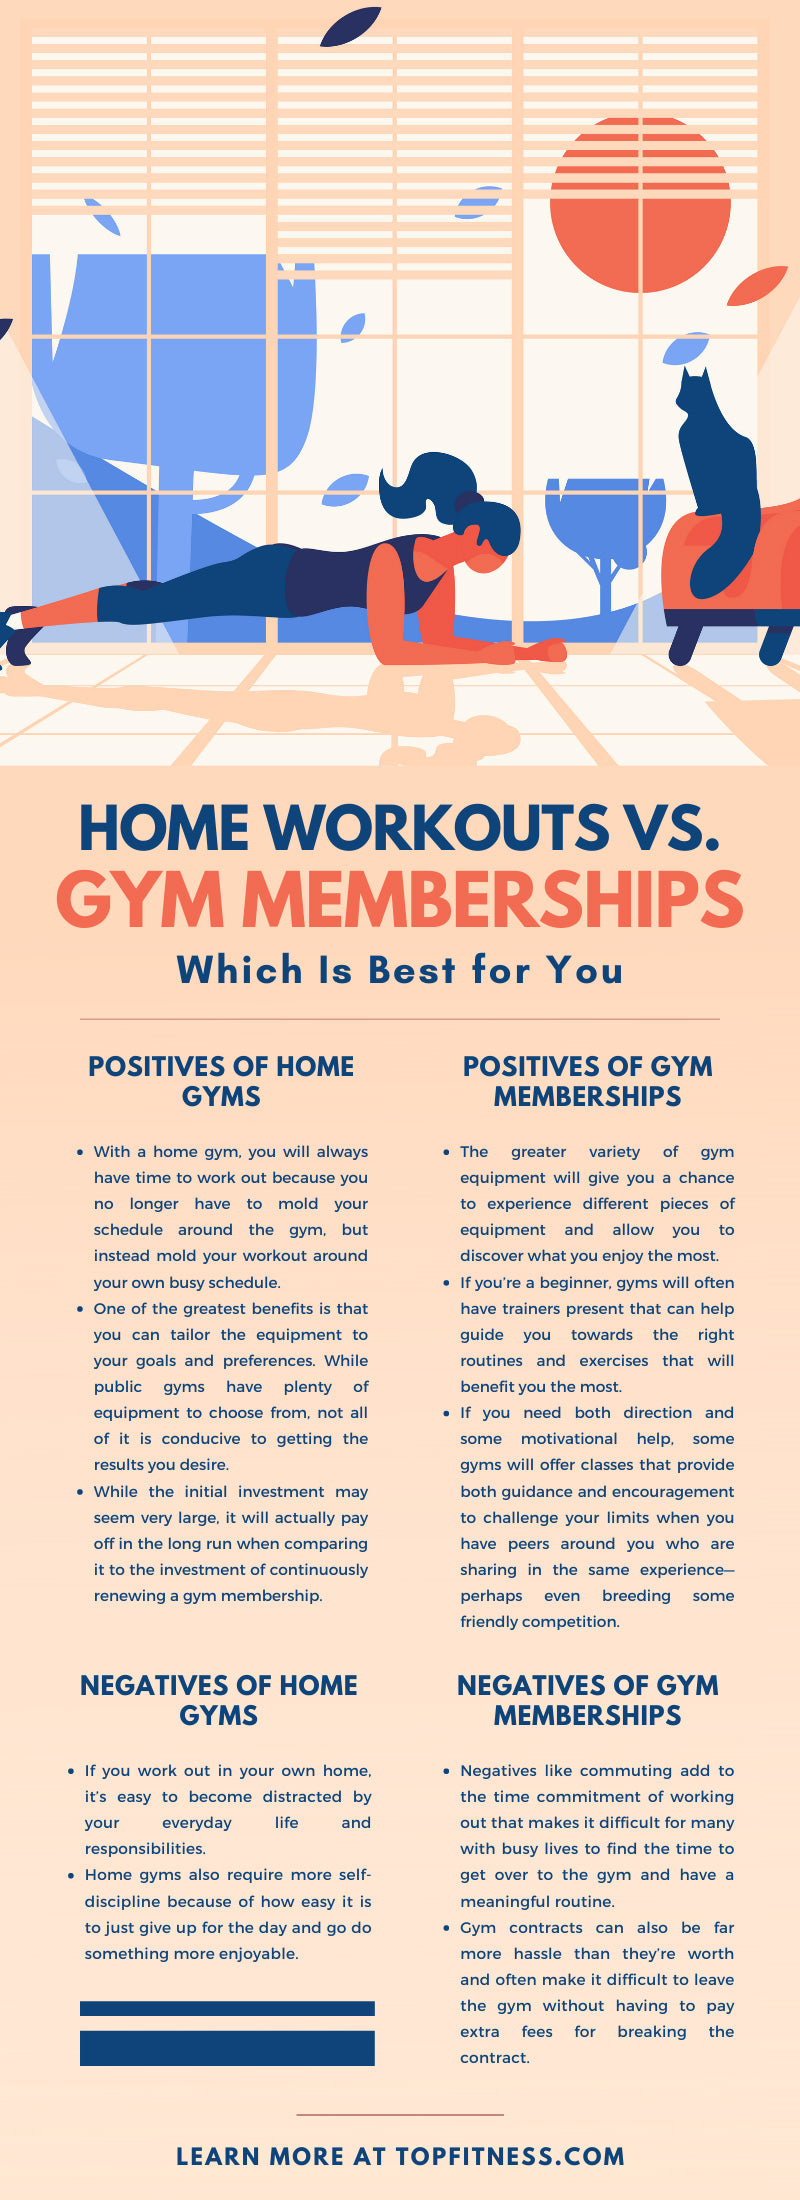 Home Workouts vs. Gym Memberships: Which Is Best for You